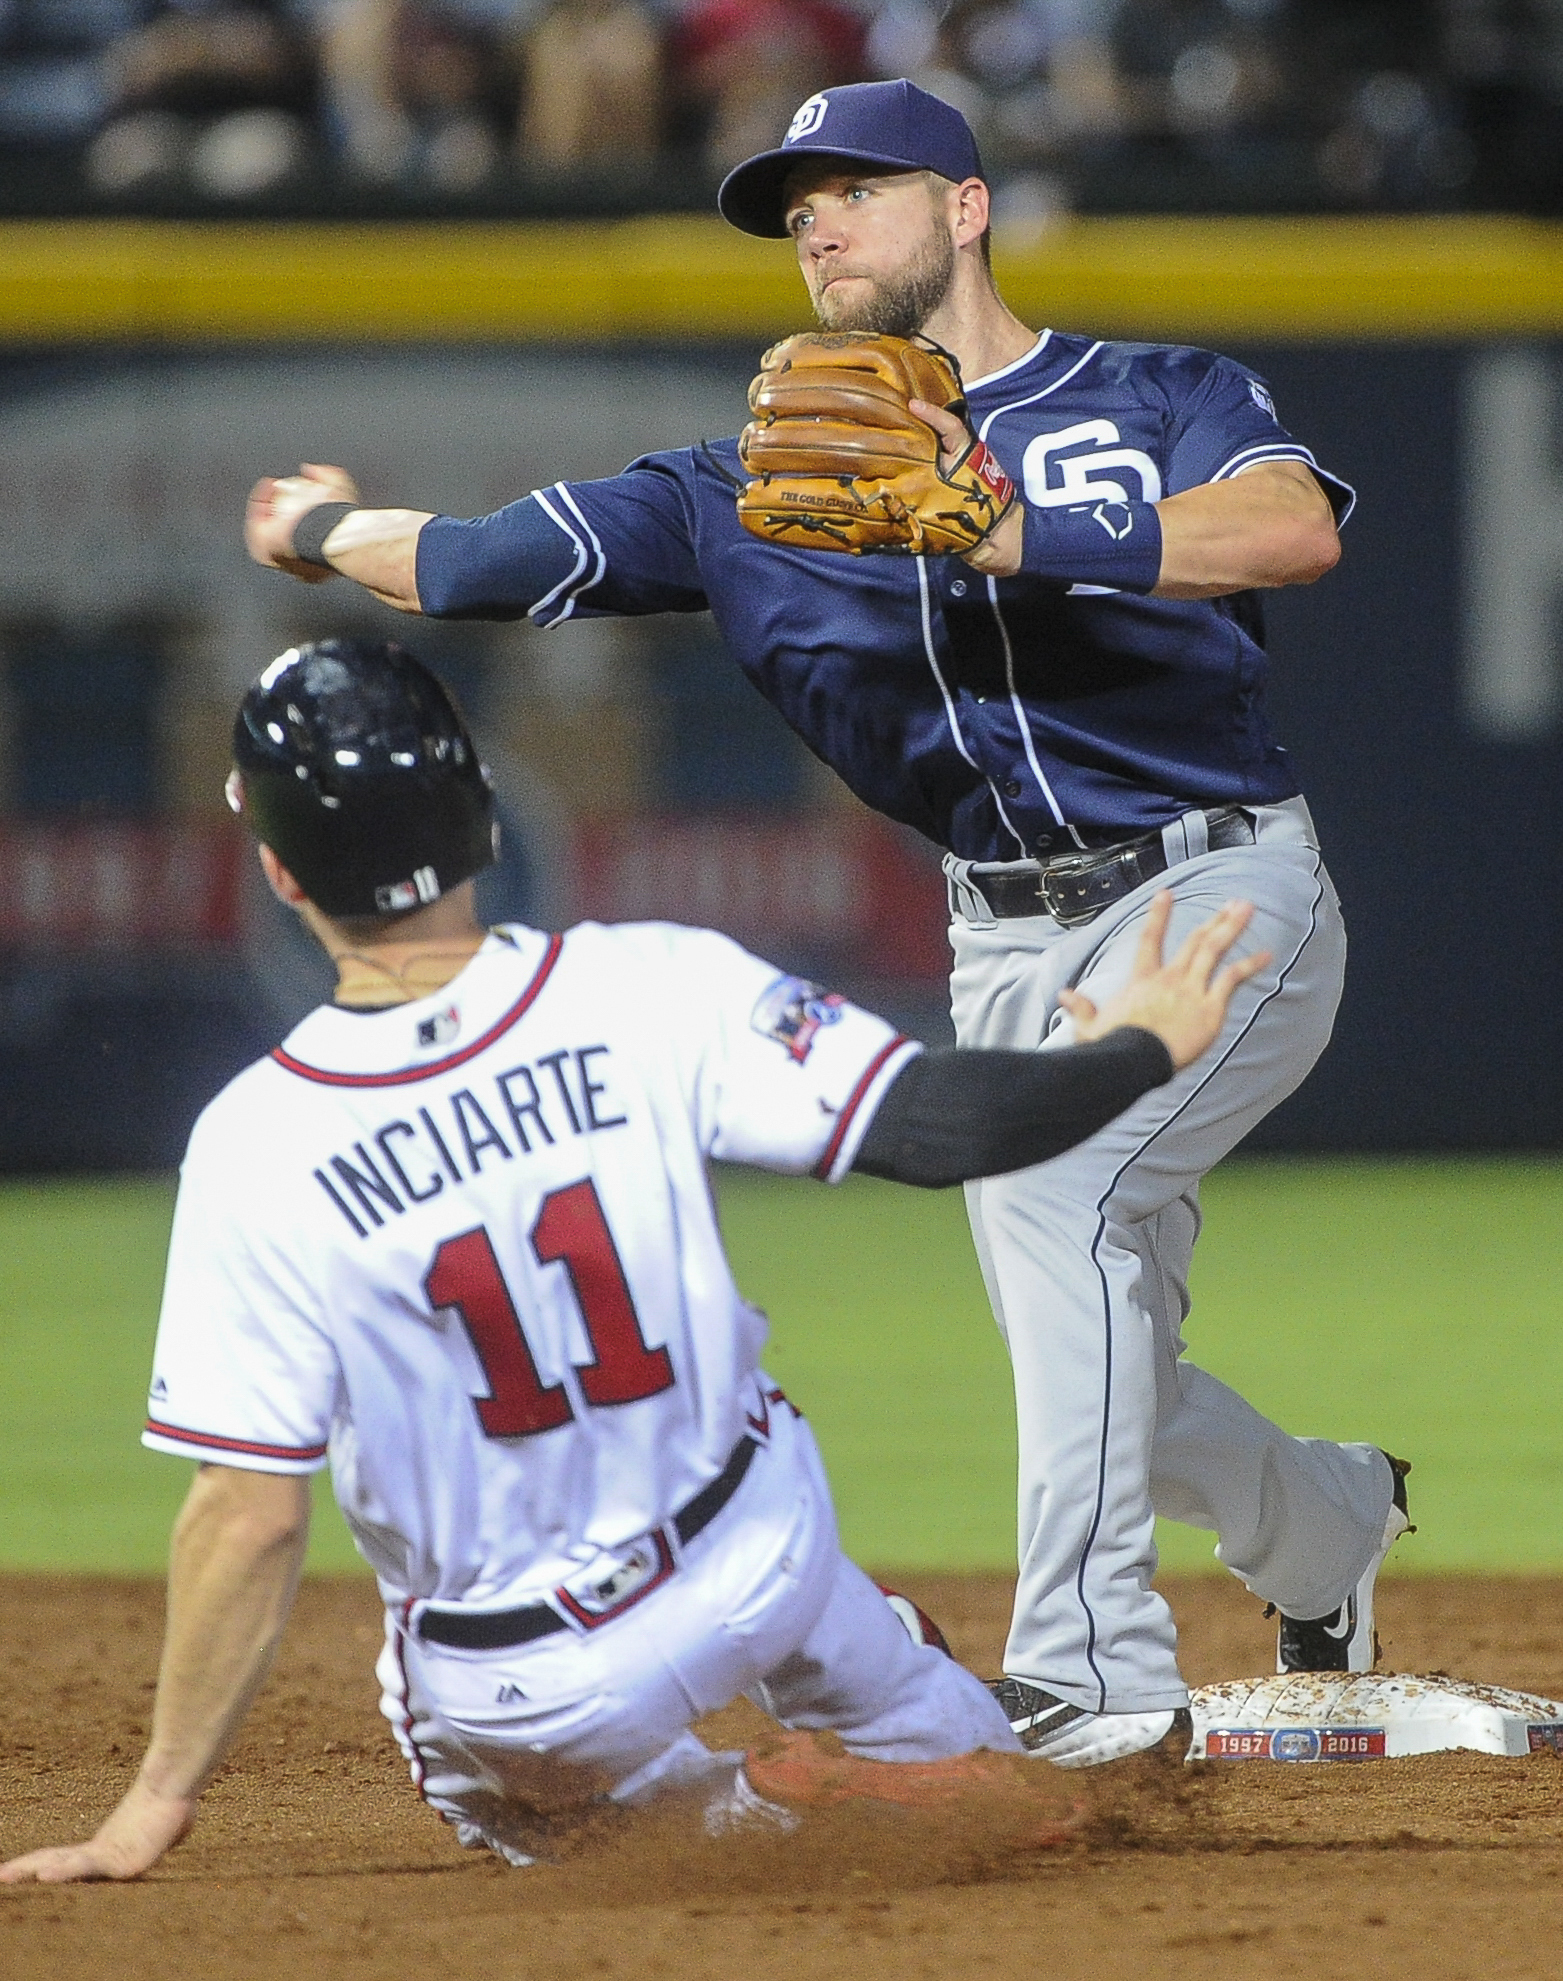 San Diego Padres second baseman Ryan Schimpf turns a double play as he forces out Atlanta Braves' Ender Inciarte (11) on a throw from pitcher Christian Friedrich and throws out Adonis Garcia at first base during the sixth inning of a baseball game, Tuesda